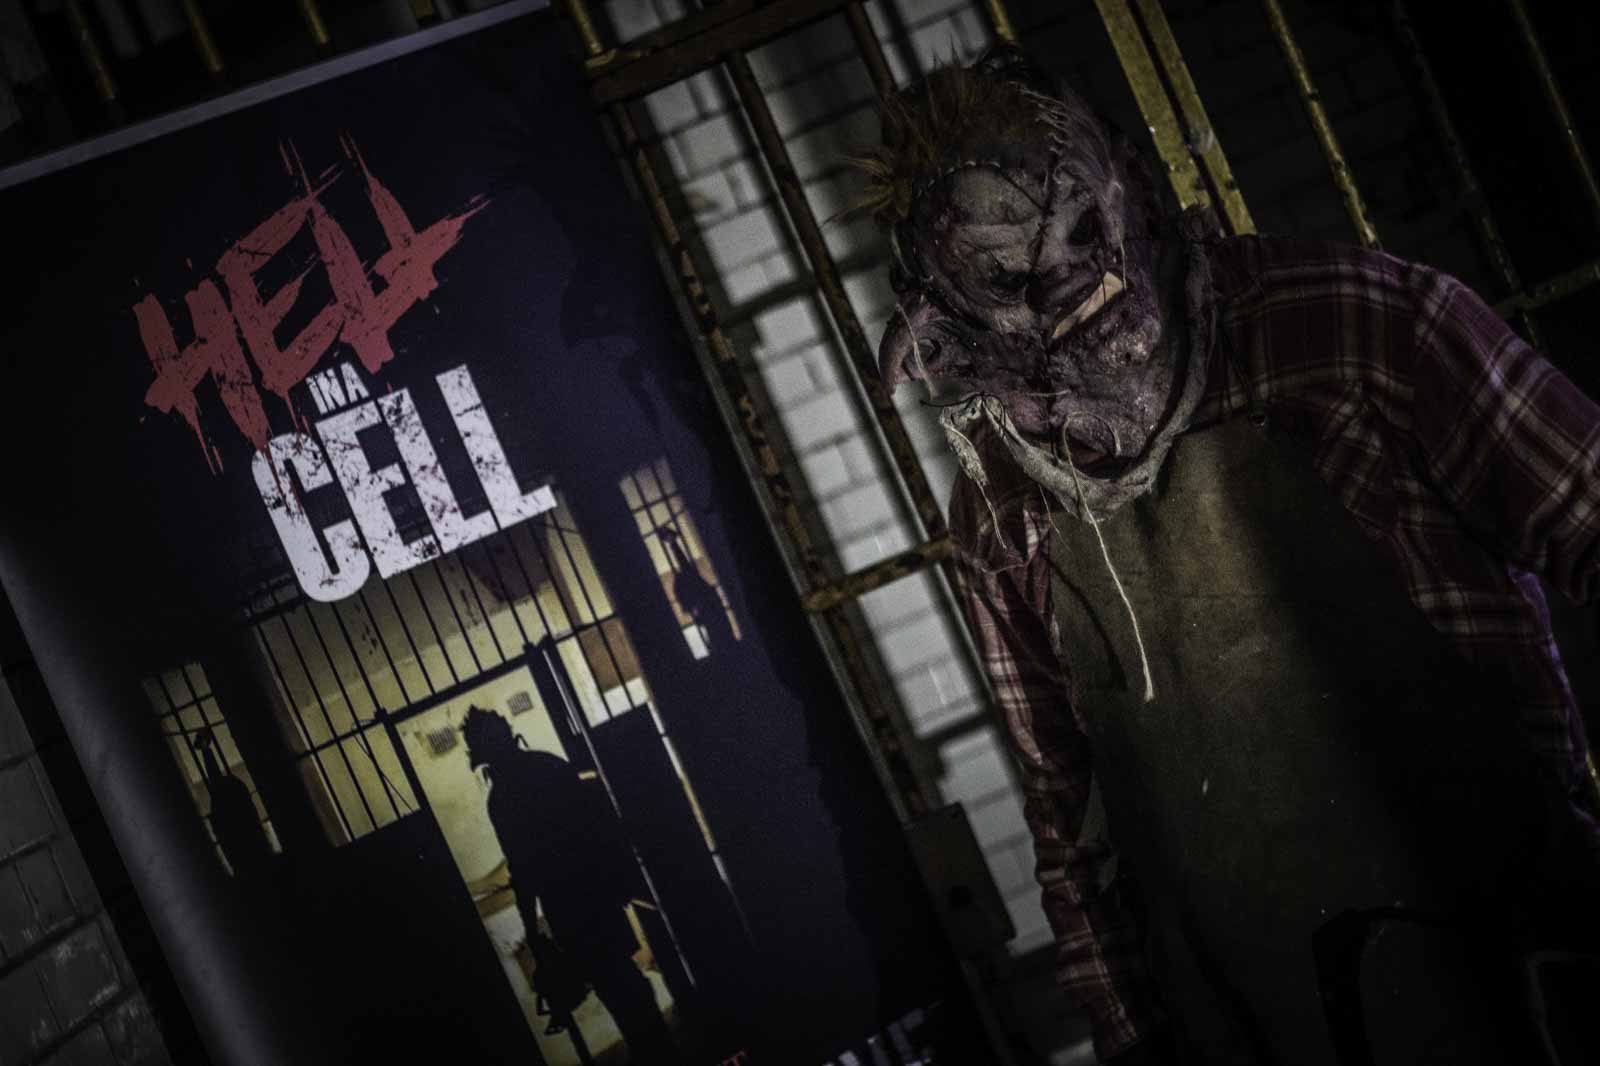 Hell in a cell Bristol